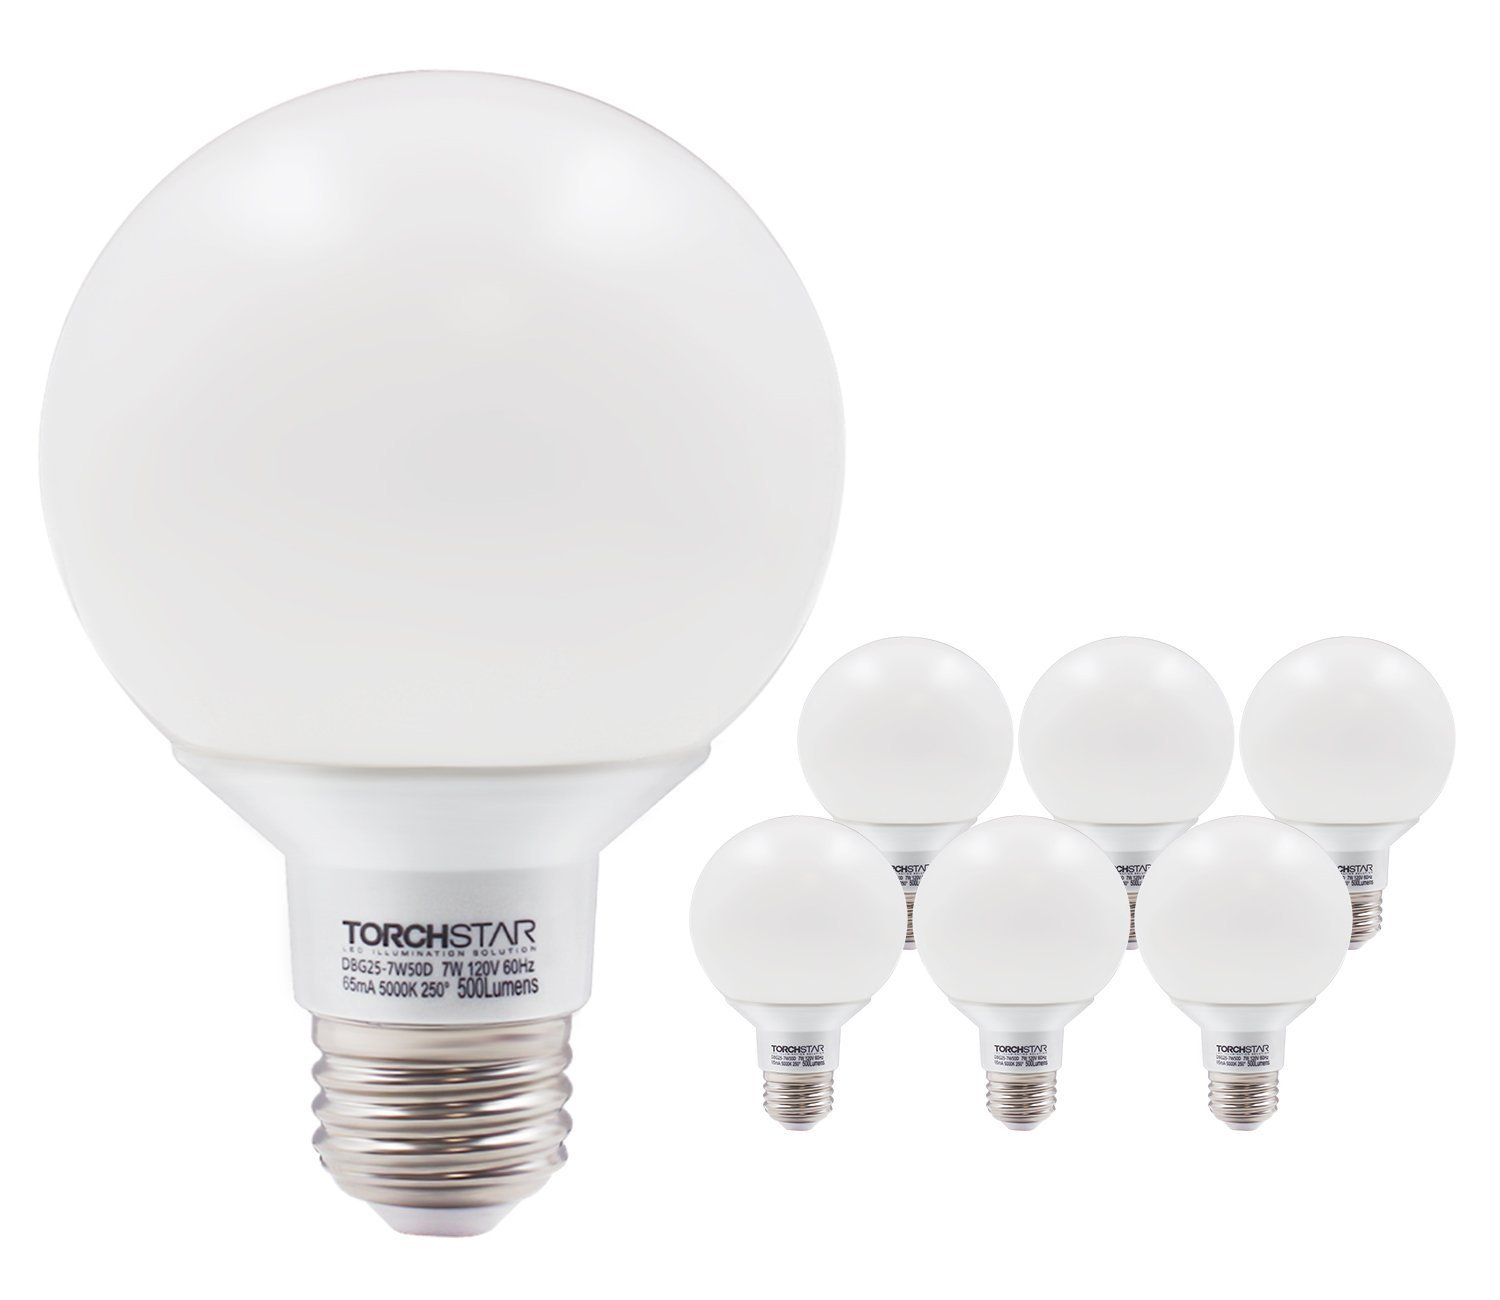 G25 Globe Led Bulb Dimmable 7W 60W Equiv, Vanity Style Daylight 5000K For  Makeup, Pendant, Bathroom, Dressing Room Decorative Light, 3 YEAR WARRANTY,  ...